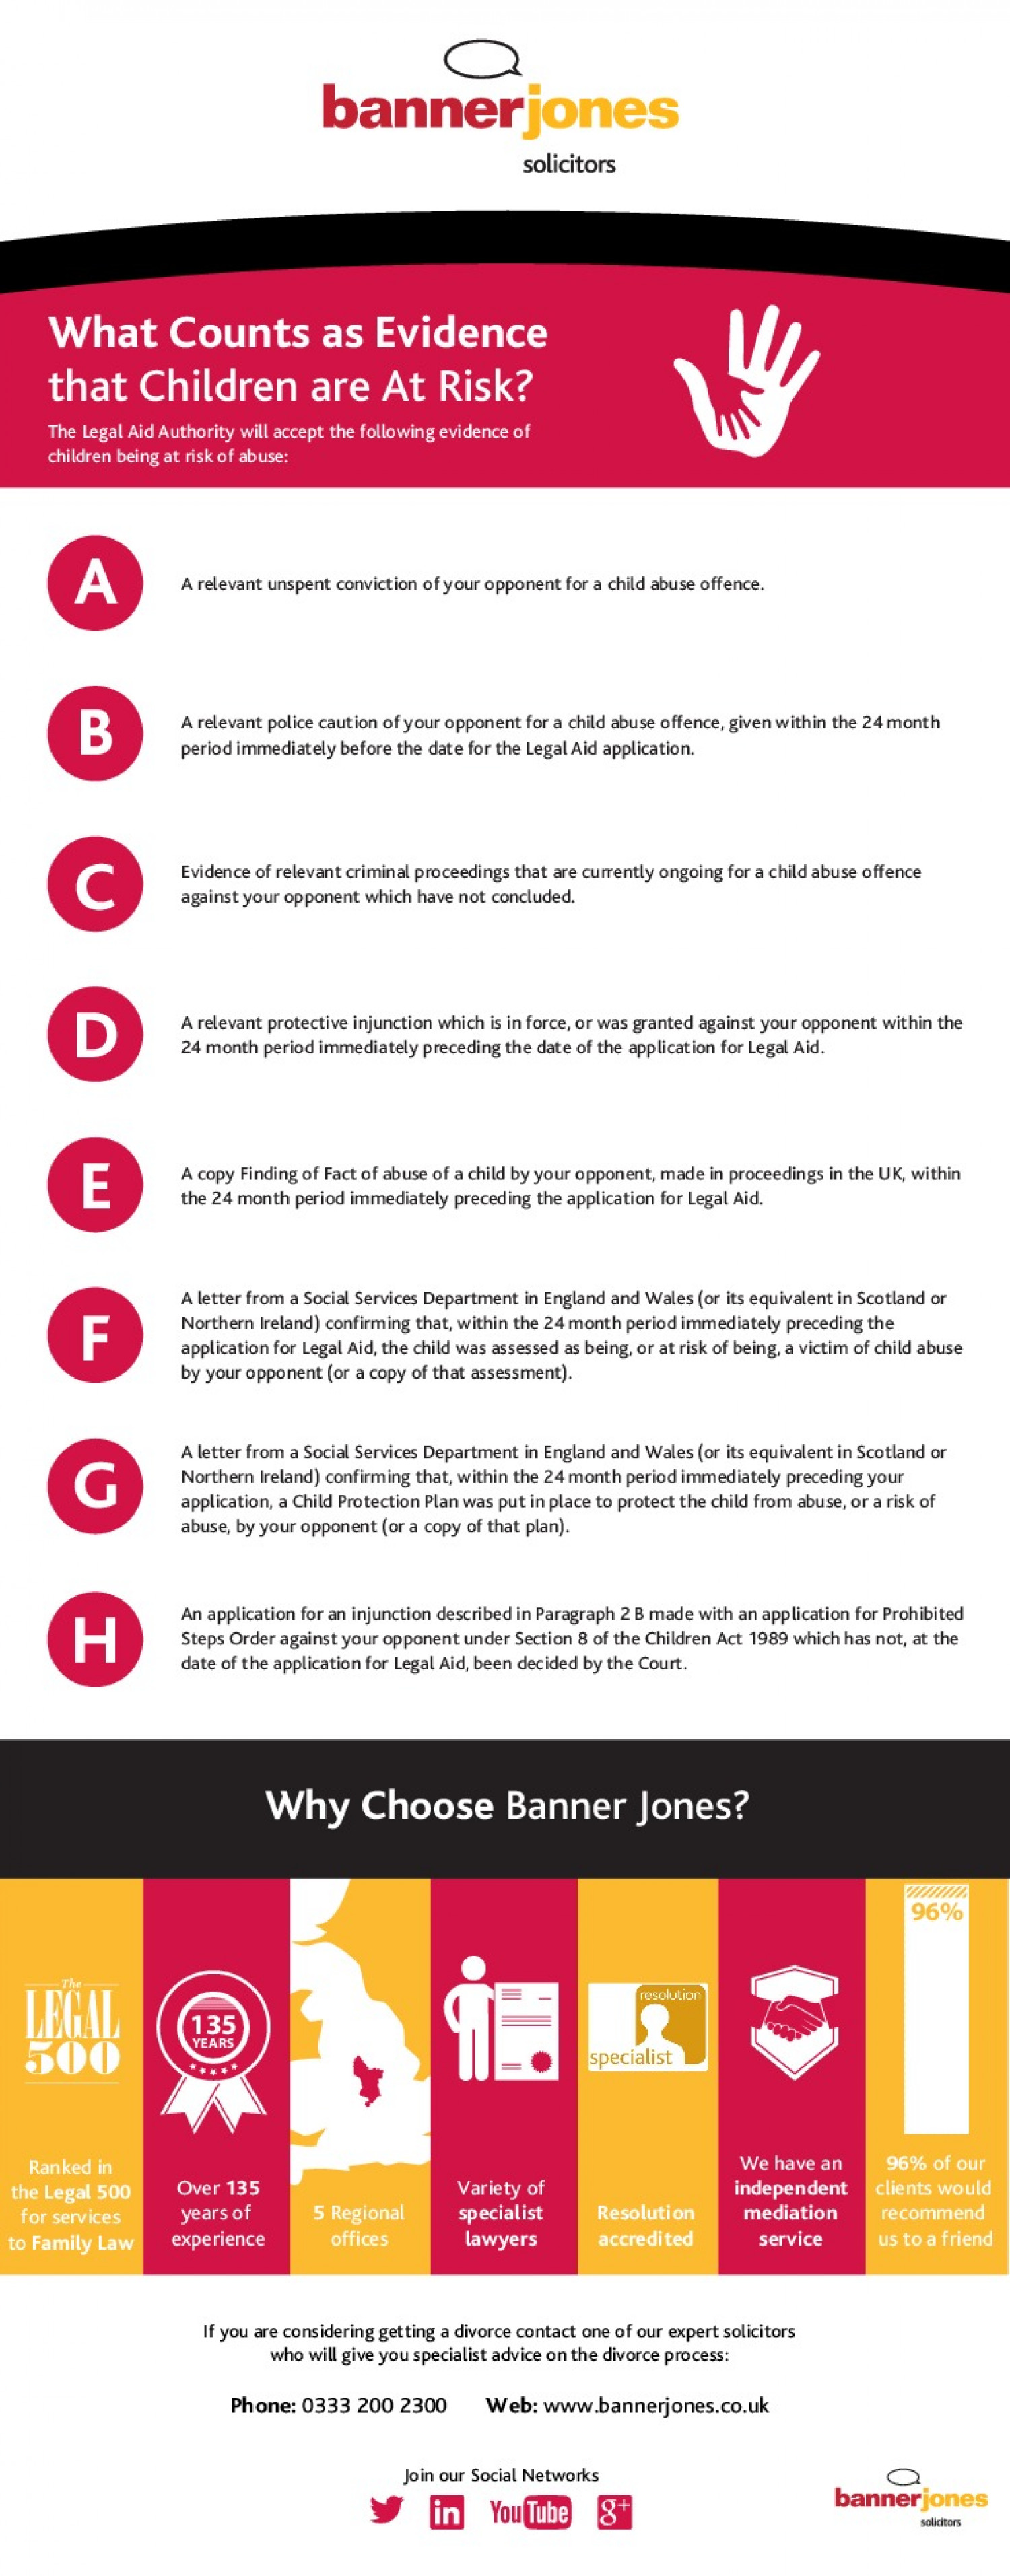 Family Law & Legal Aid - Legal Aid Can Be Obtained if Children Are At Risk Infographic